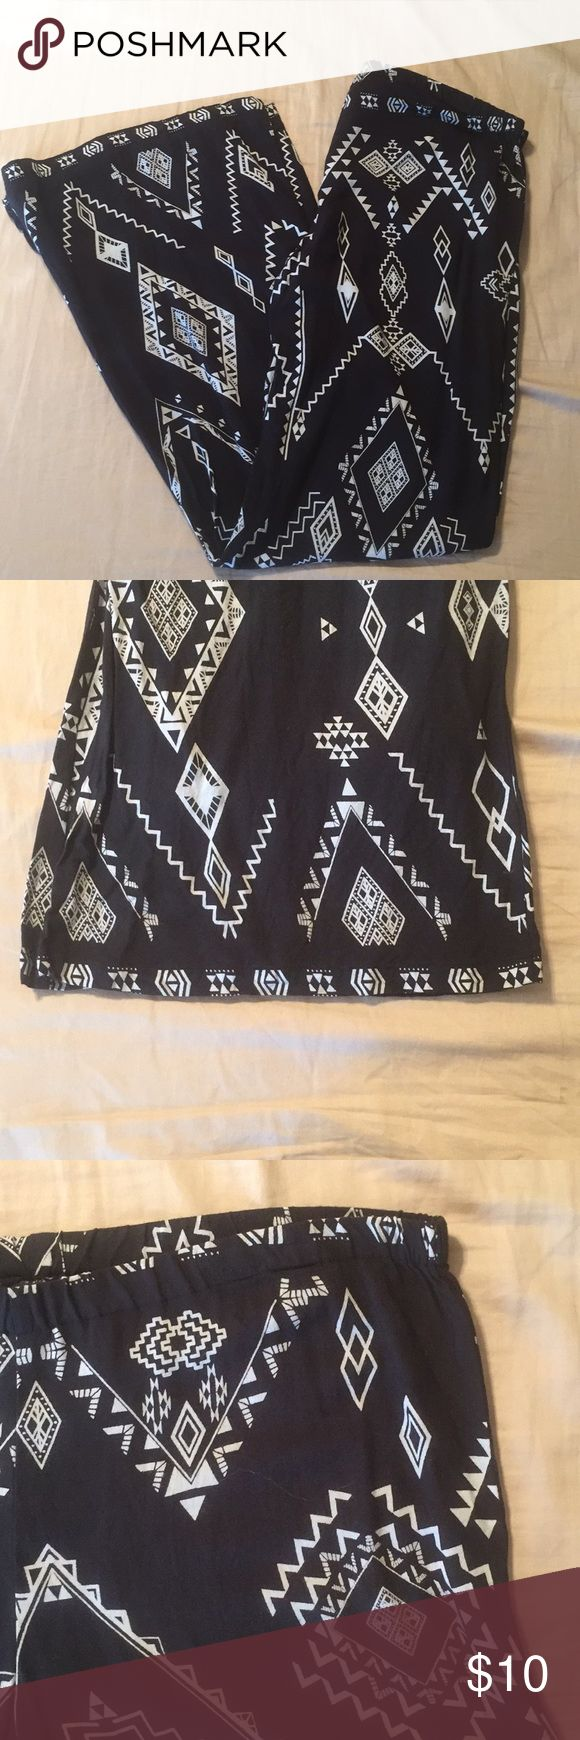 Aztec print pants Black & white Aztec print wide leg pants  100% Rayon, cottony feel Elastic waistband  Not true to size, runs small Billabong Pants Wide Leg